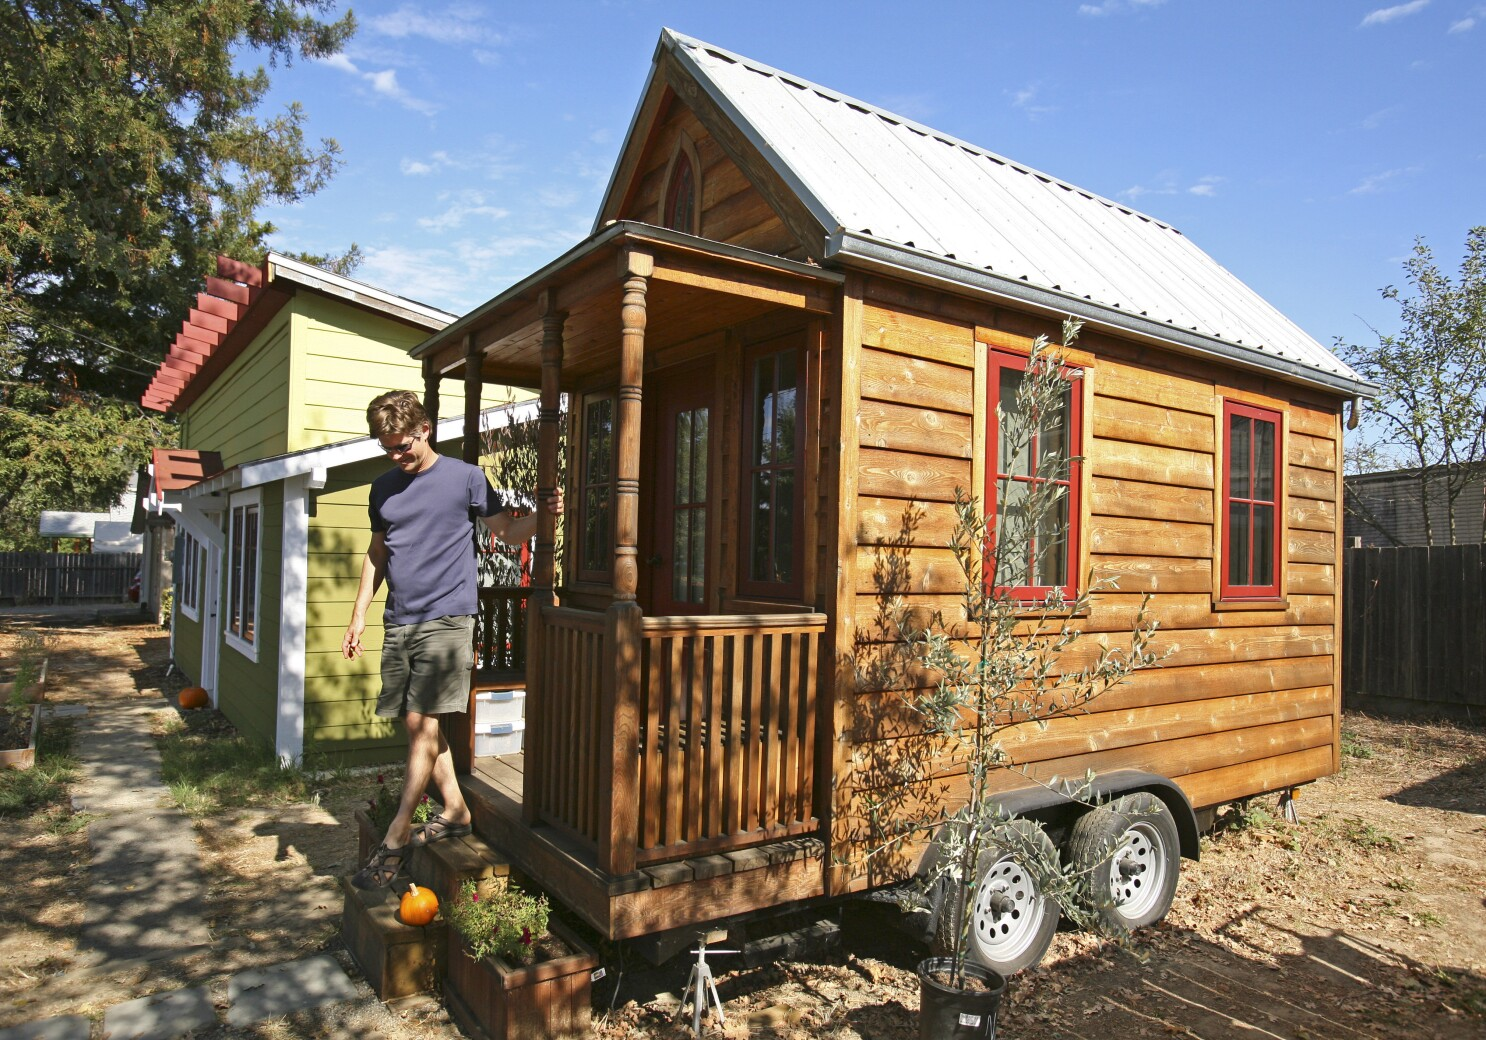 San Diego housing panel OKs movable tiny houses as new, low-cost option